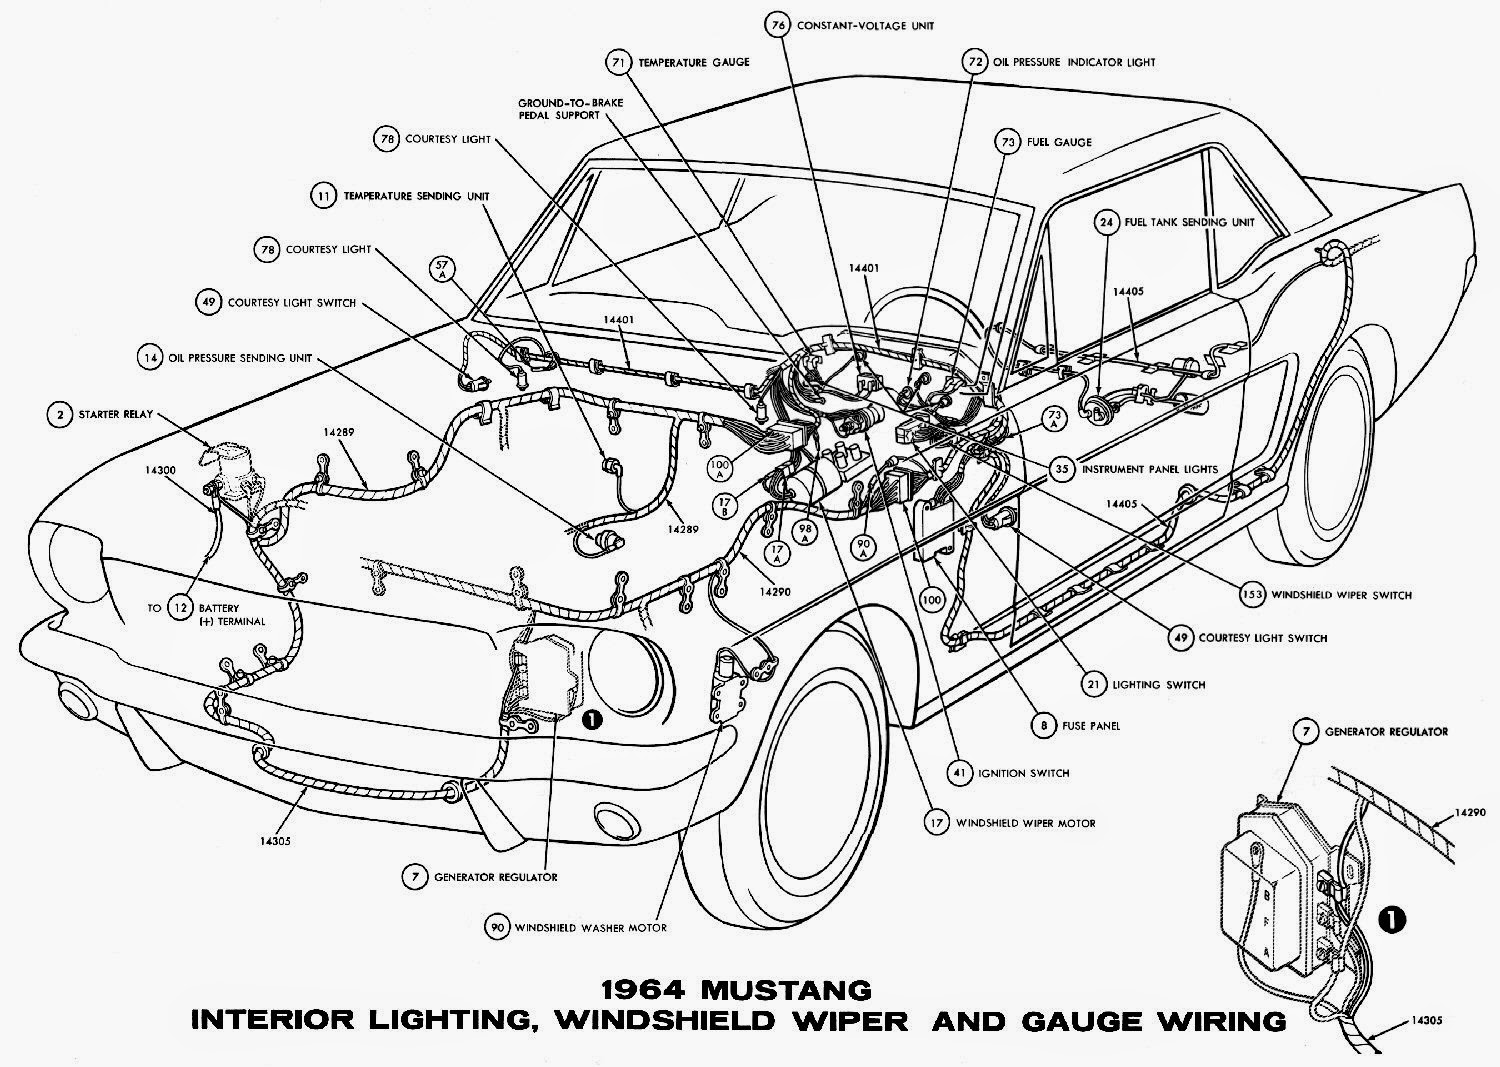 peugeot 306 heater wiring diagram peugeot discover your wiring peugeot 206 cooling fan wiring diagram